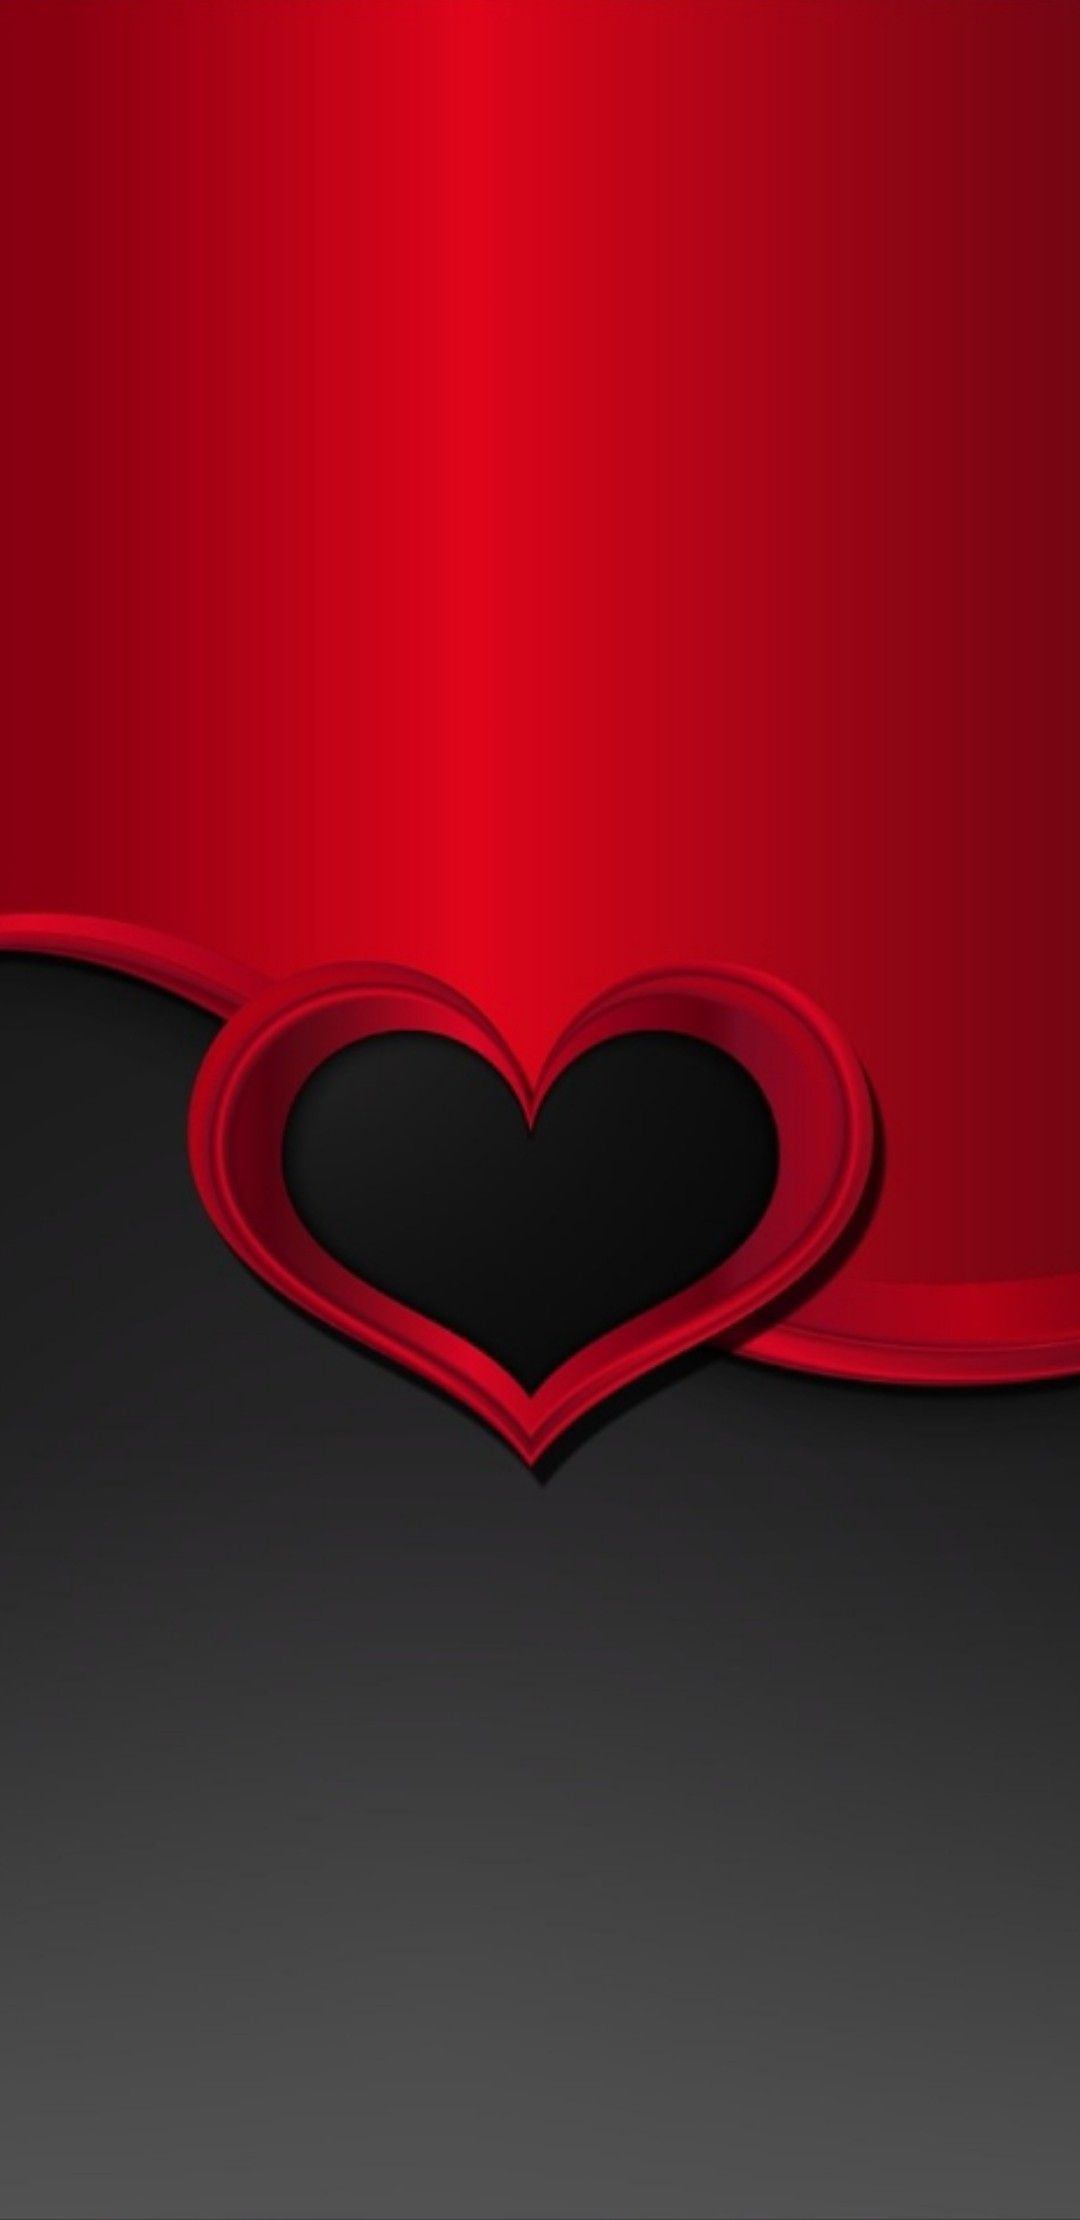 Wallpaper By Artist Unknown Heart Iphone Wallpaper Heart Wallpaper Red Wallpaper